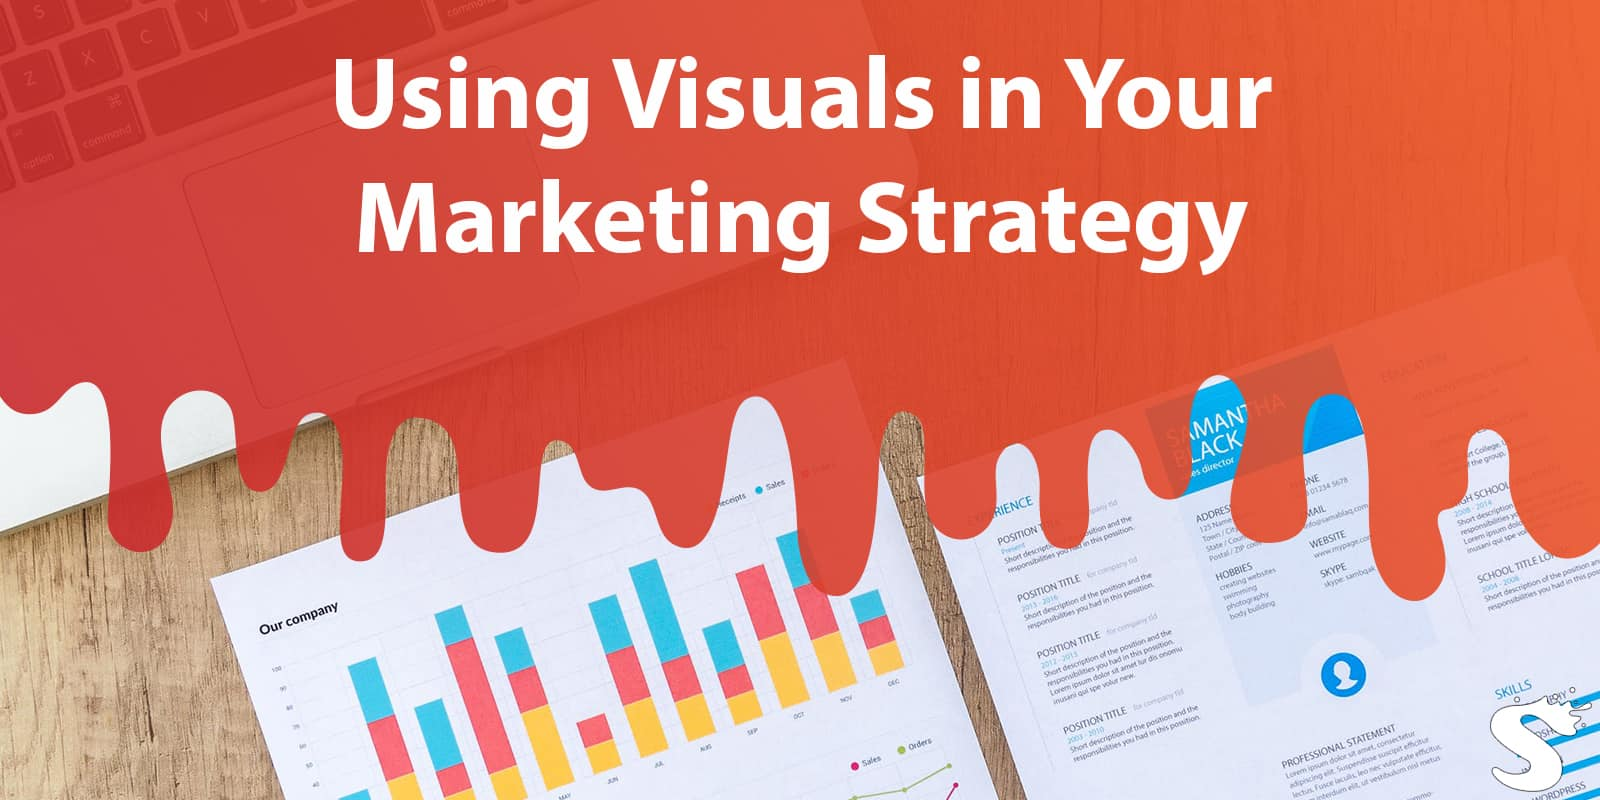 4 Benefits of Using Visuals in Your Marketing Strategy